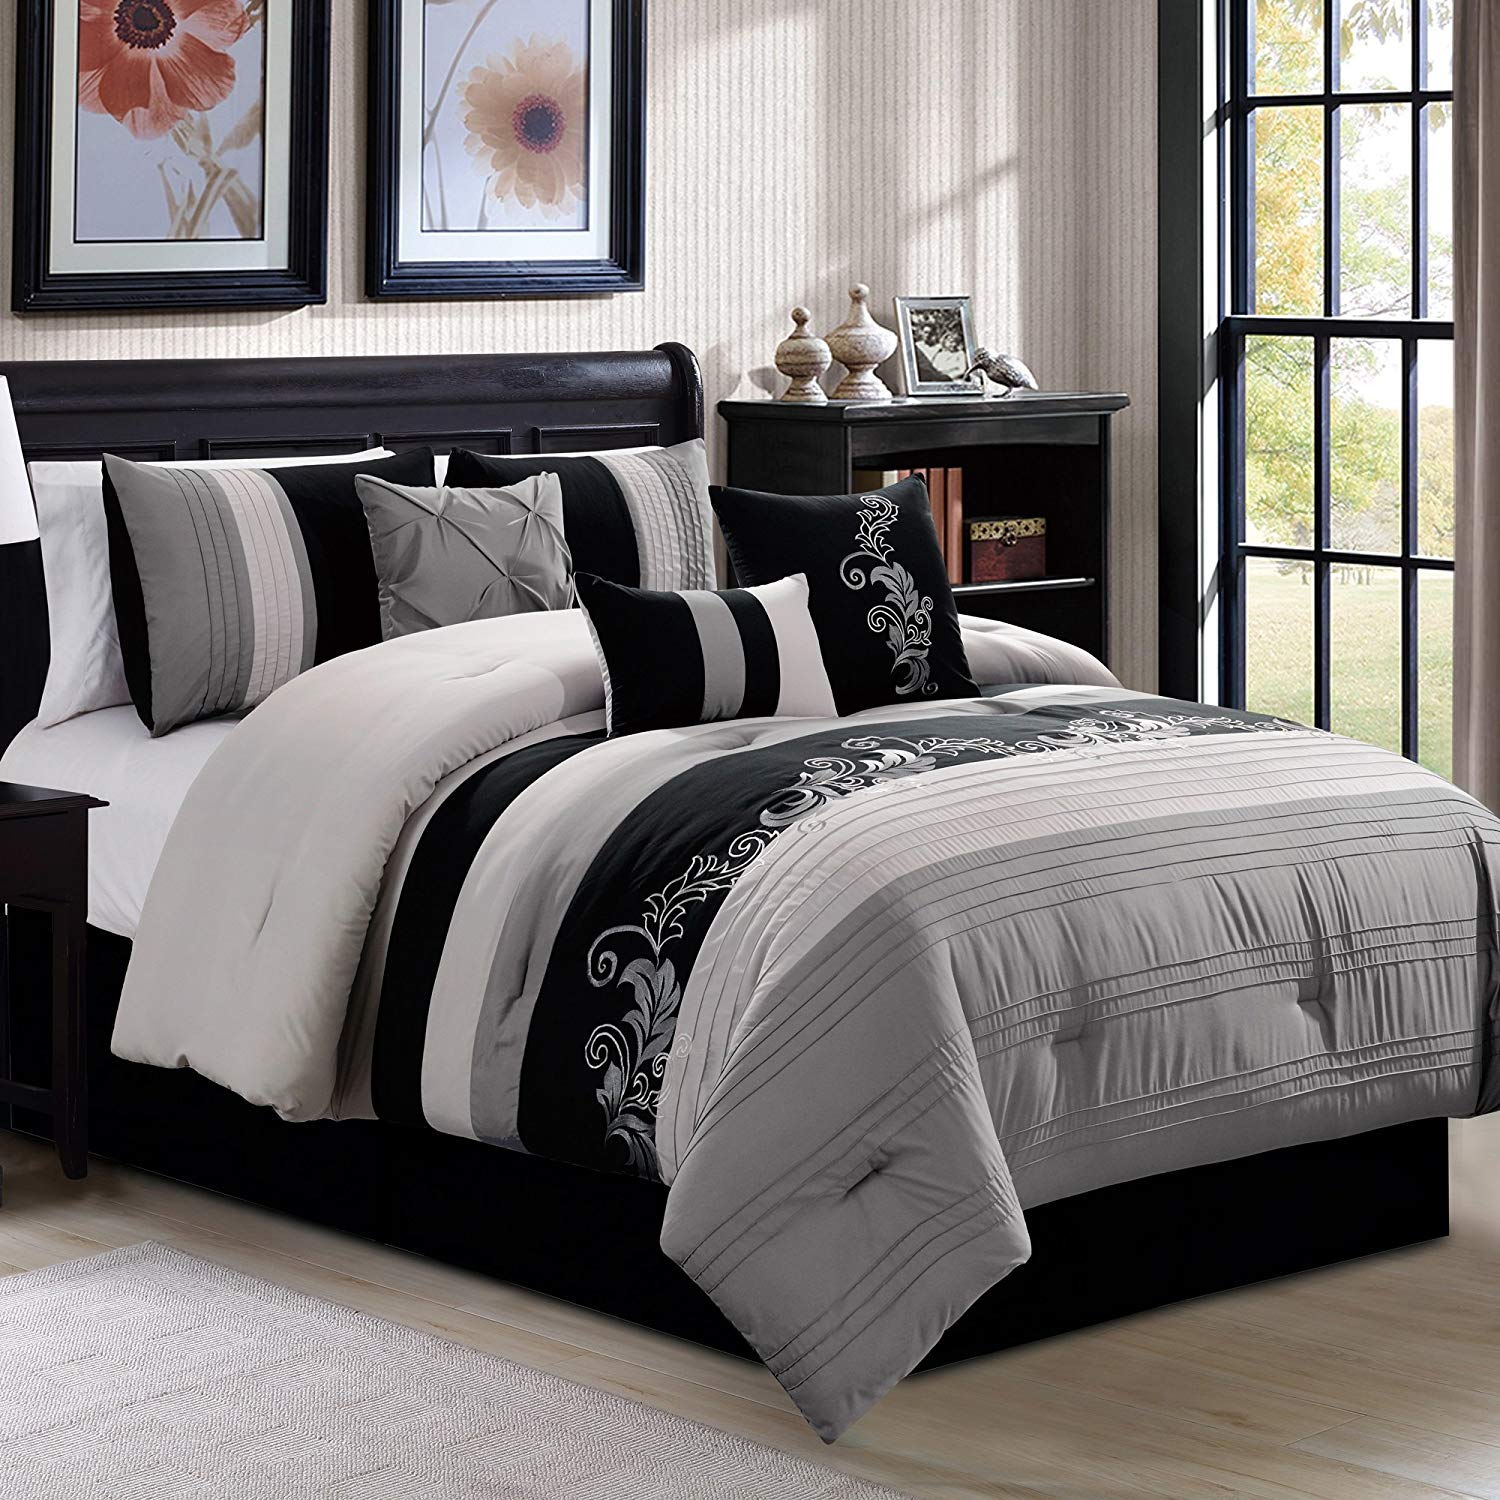 Chezmoi Collection Napa 7-Piece Luxury Leaves Scroll Embroidery Comforter Set